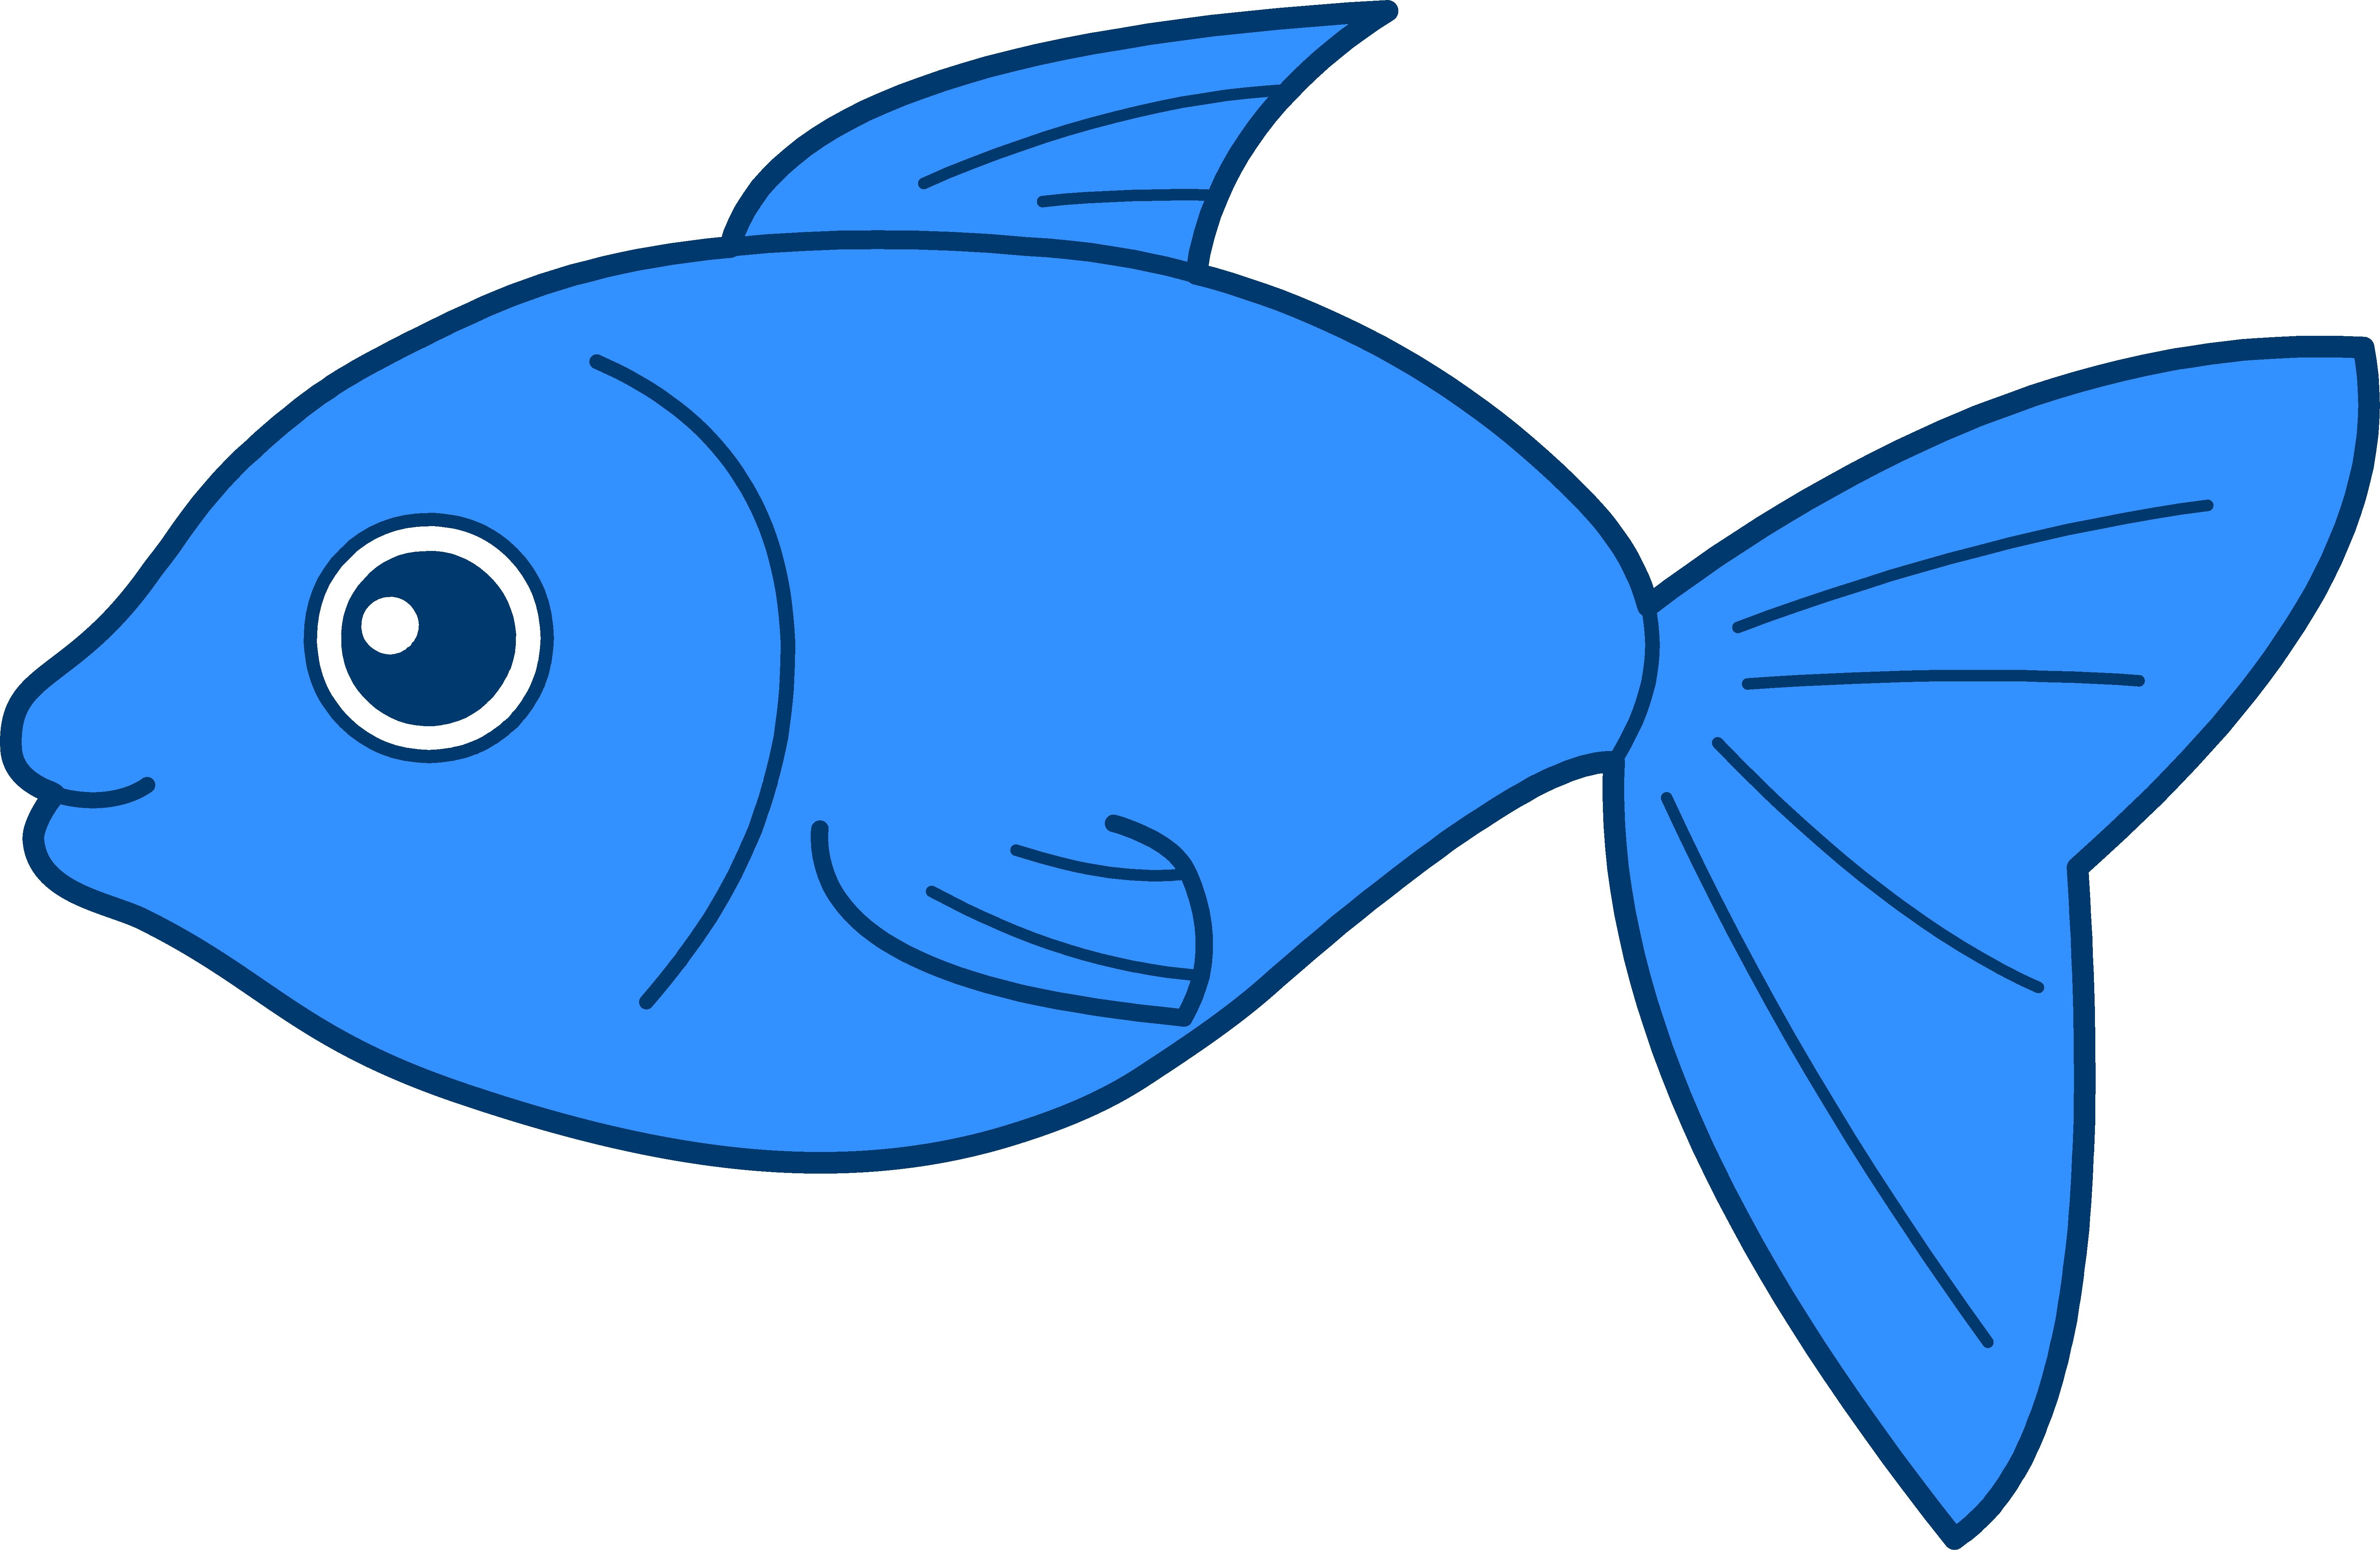 coy fish clipart at getdrawings com free for personal use coy fish rh getdrawings com free fish images clipart fish pic clipart